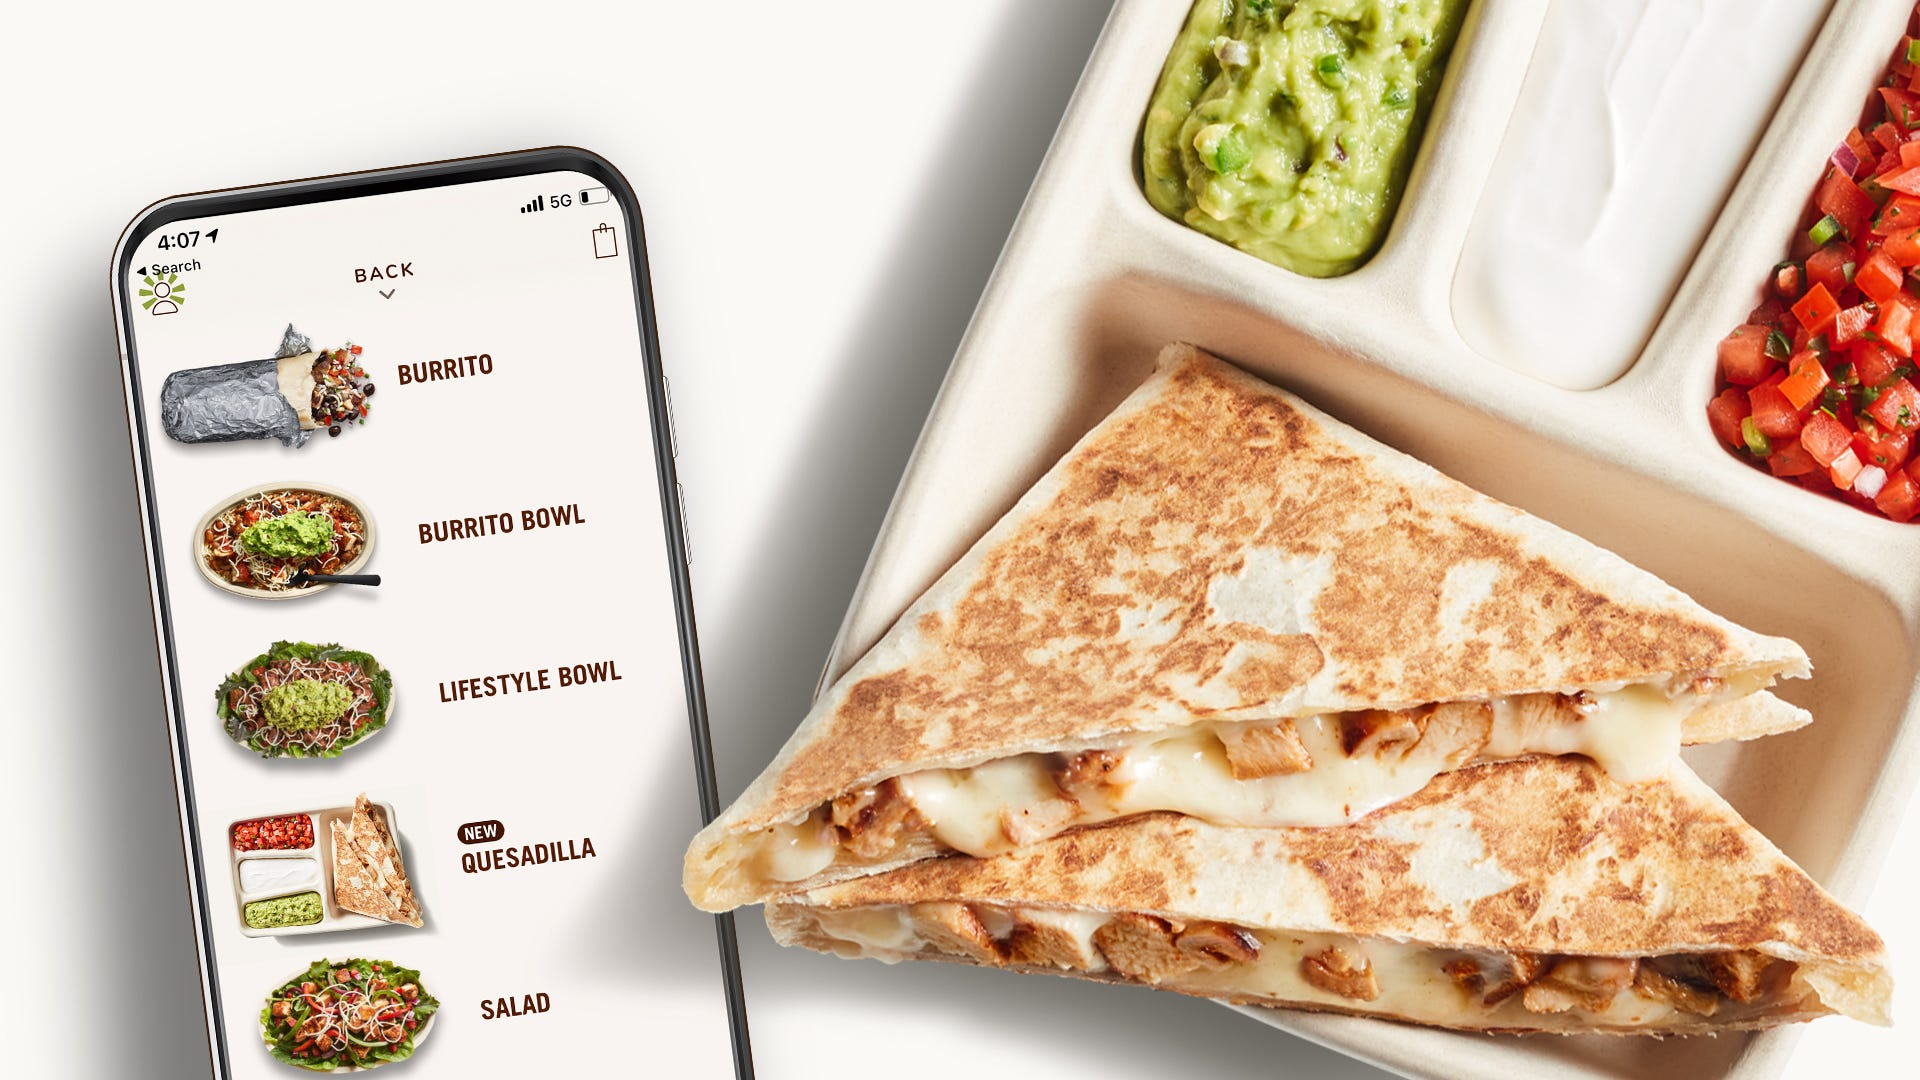 Chipotle to launch the Quesadilla asits first customizable digital-only menu item